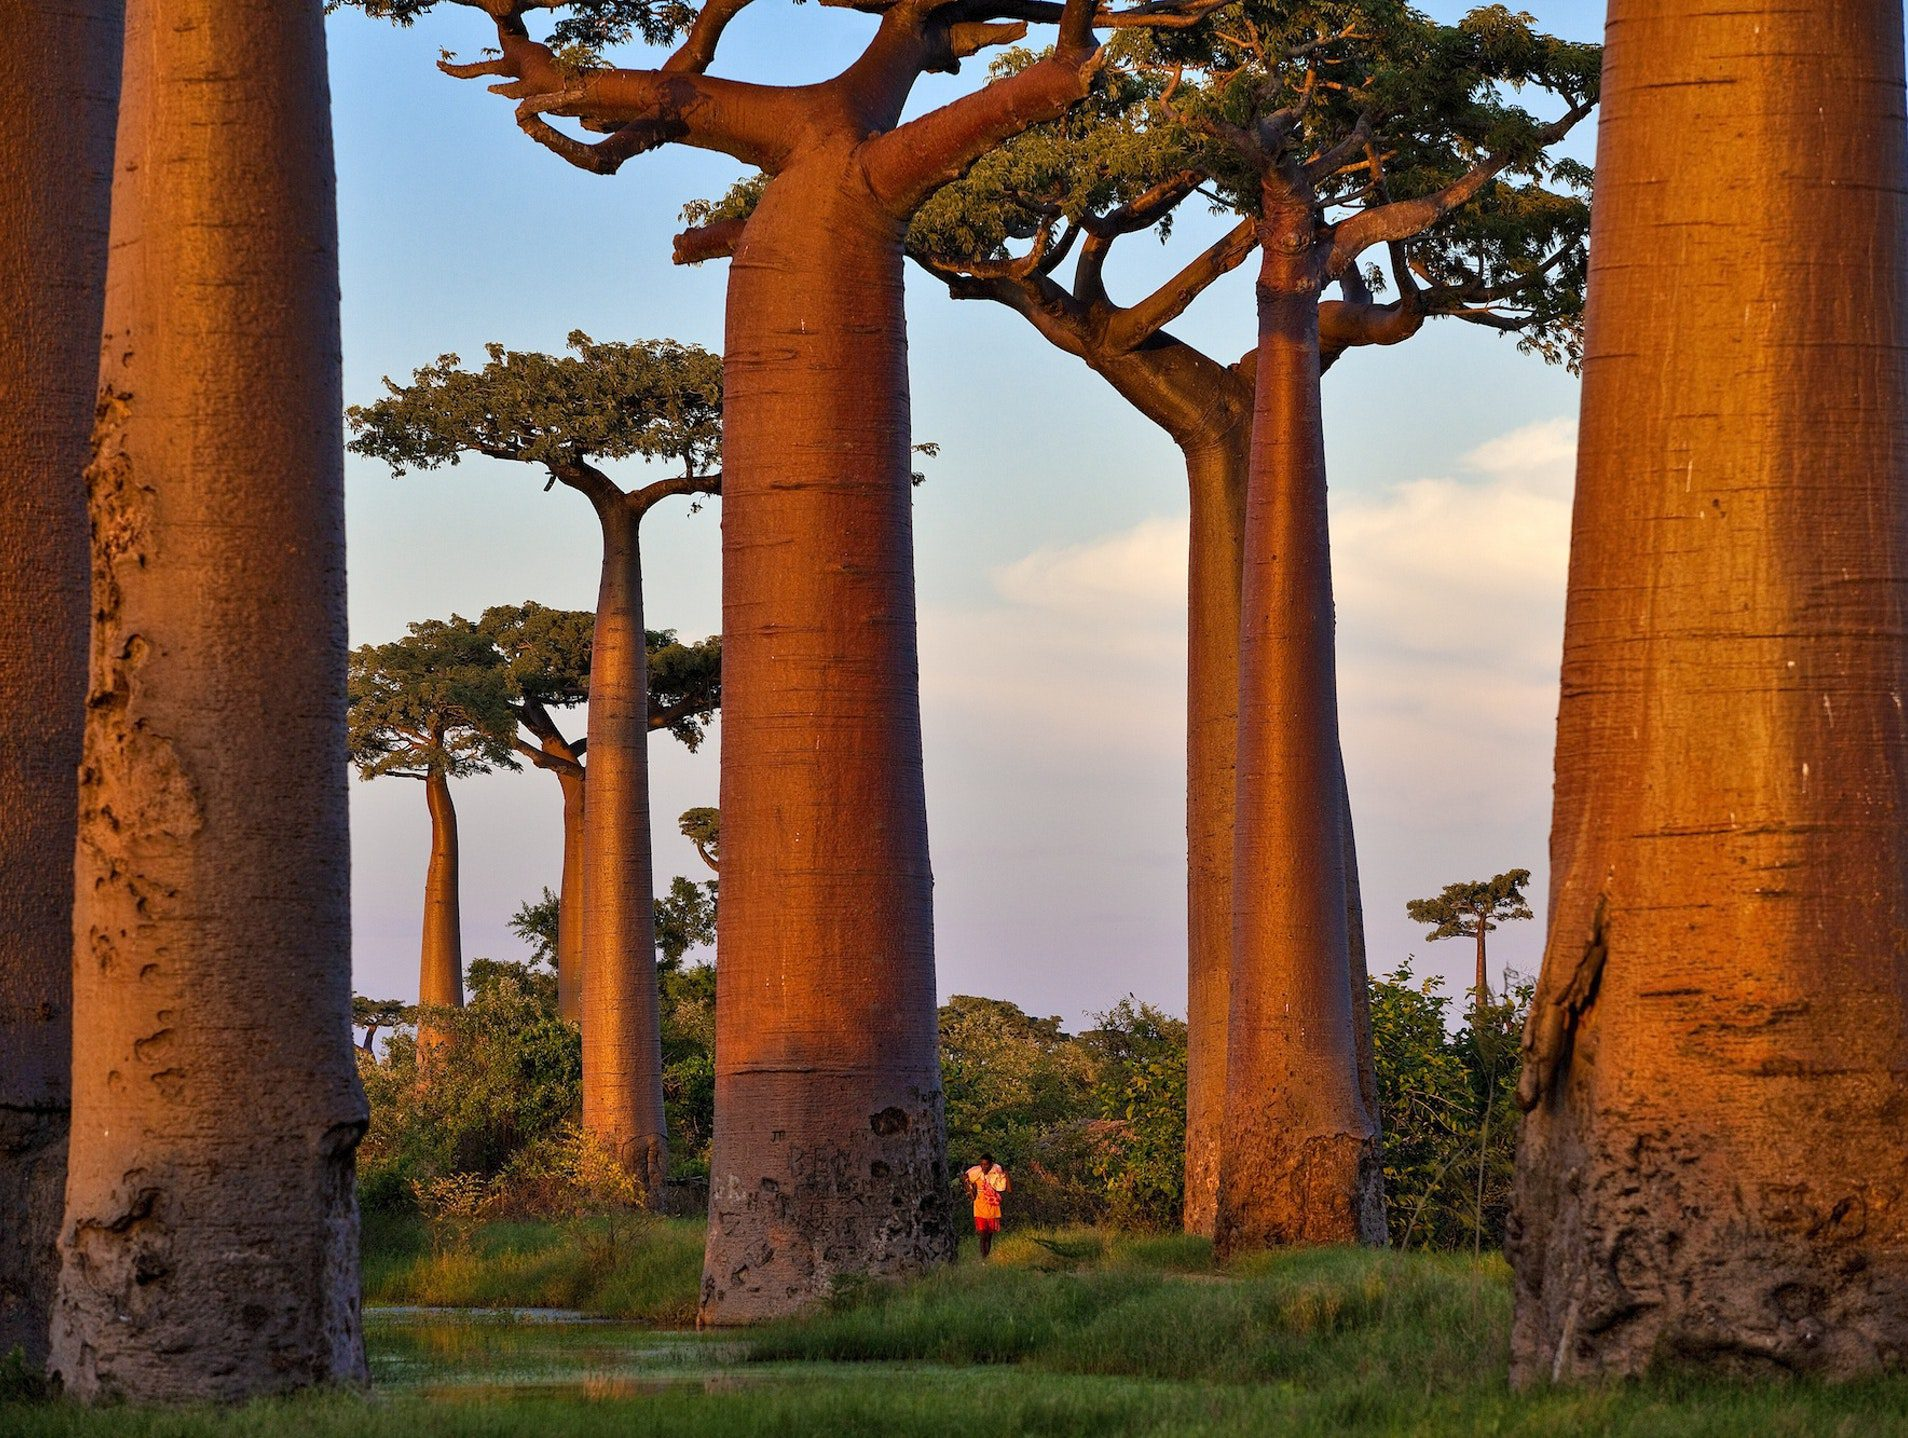 looming baobab trees dwarf a small person in the landscape